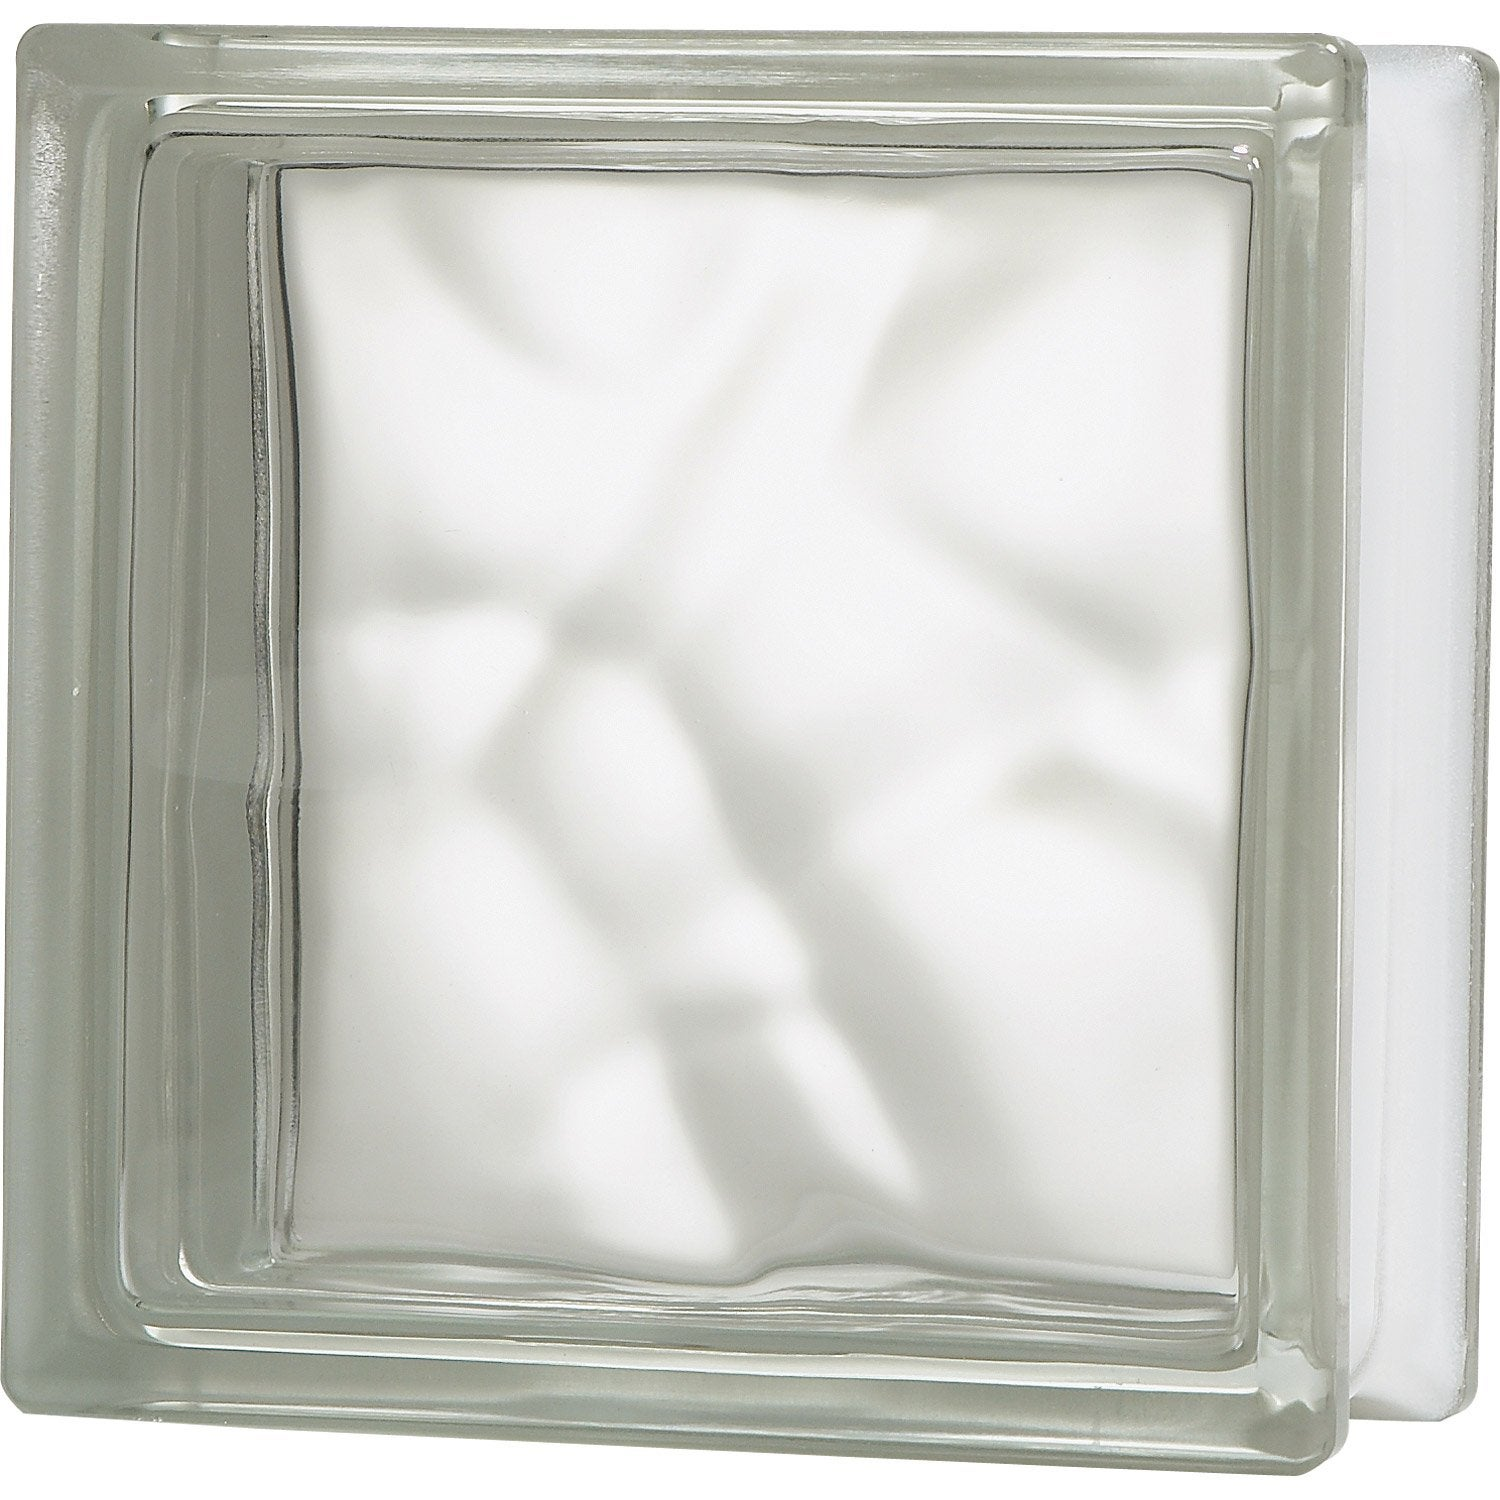 Brique de verre transparent ondul brillant leroy merlin for Monter un mur en brique de verre salle de bain